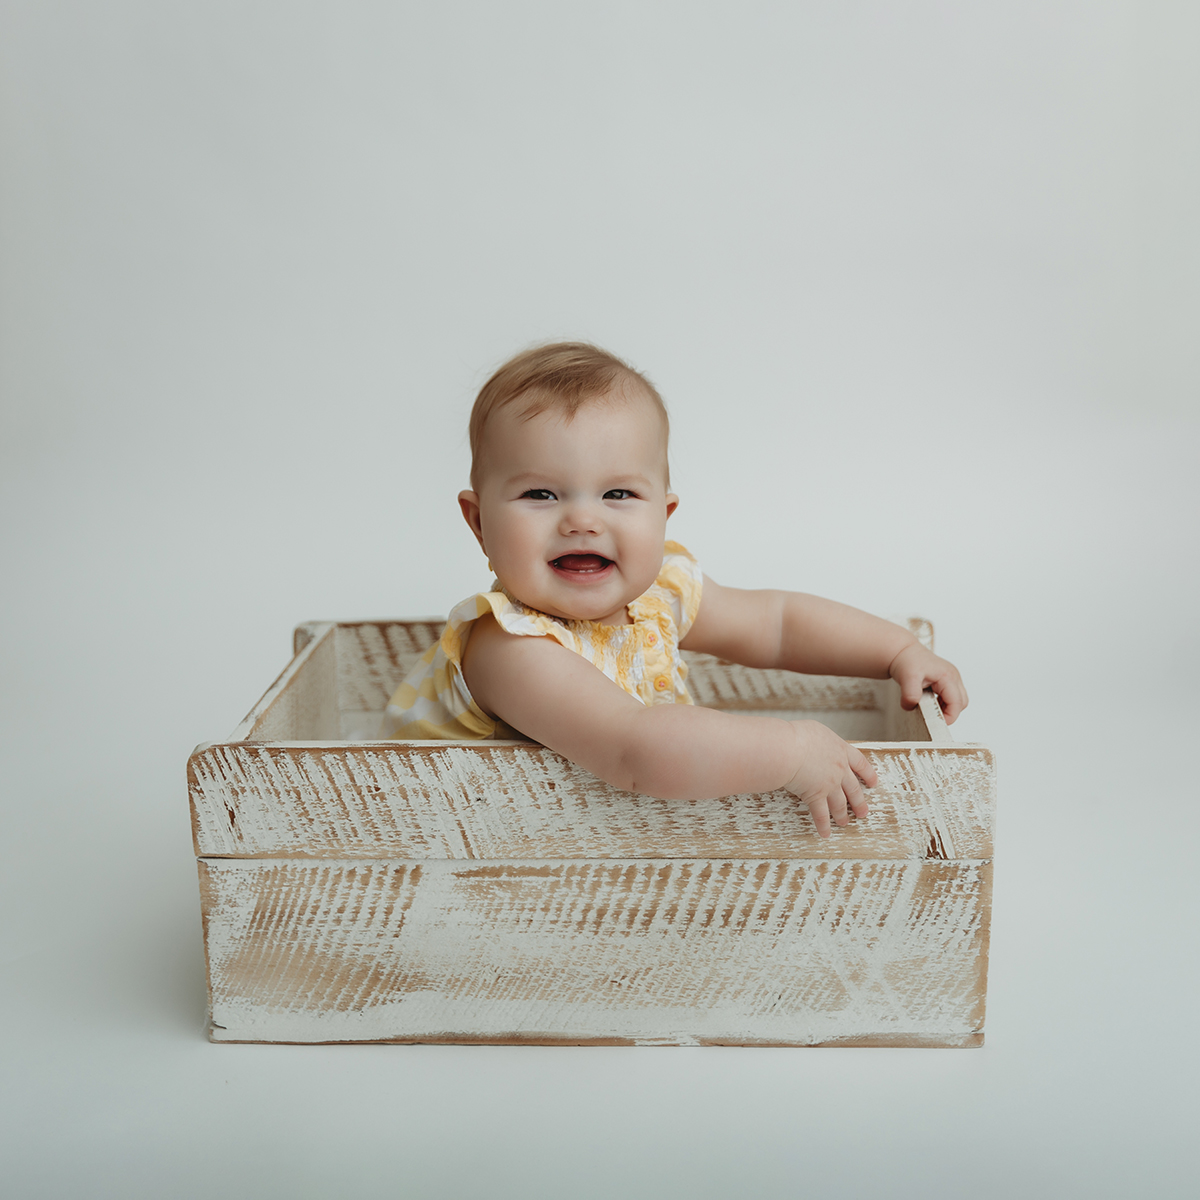 Baby sitting in rustic crate